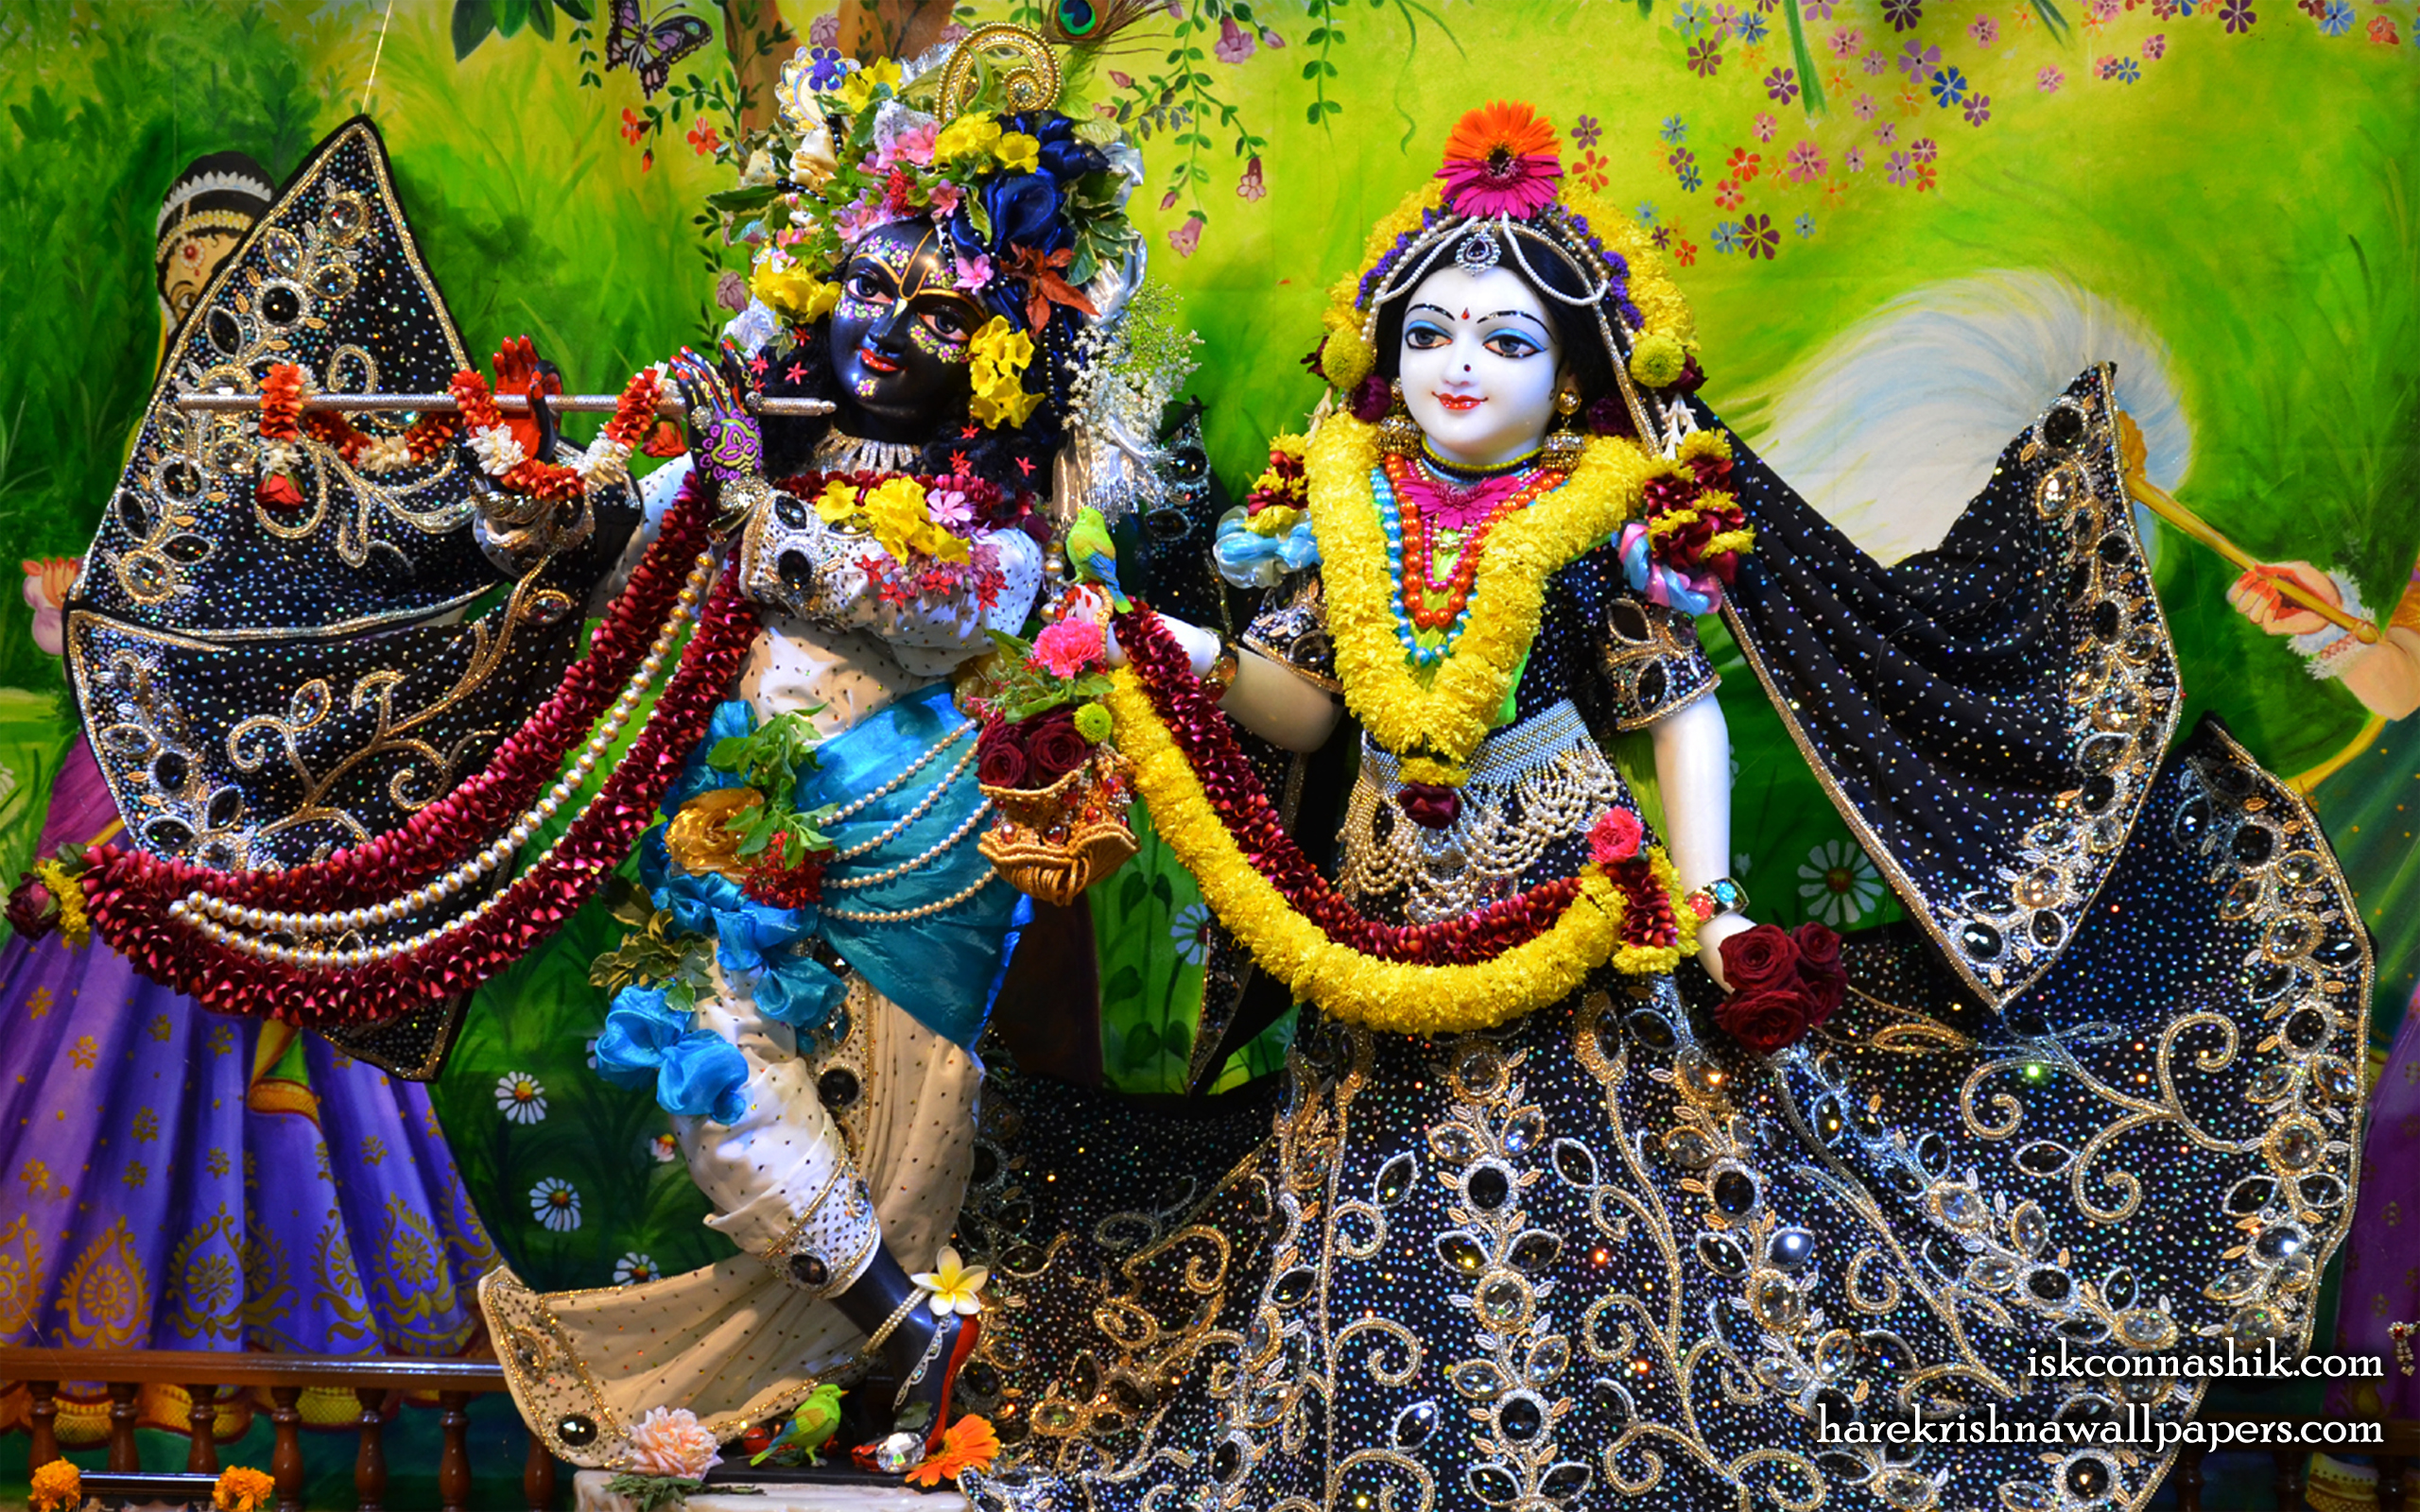 Sri Sri Radha Madan Gopal Wallpaper (019) Size 2560x1600 Download